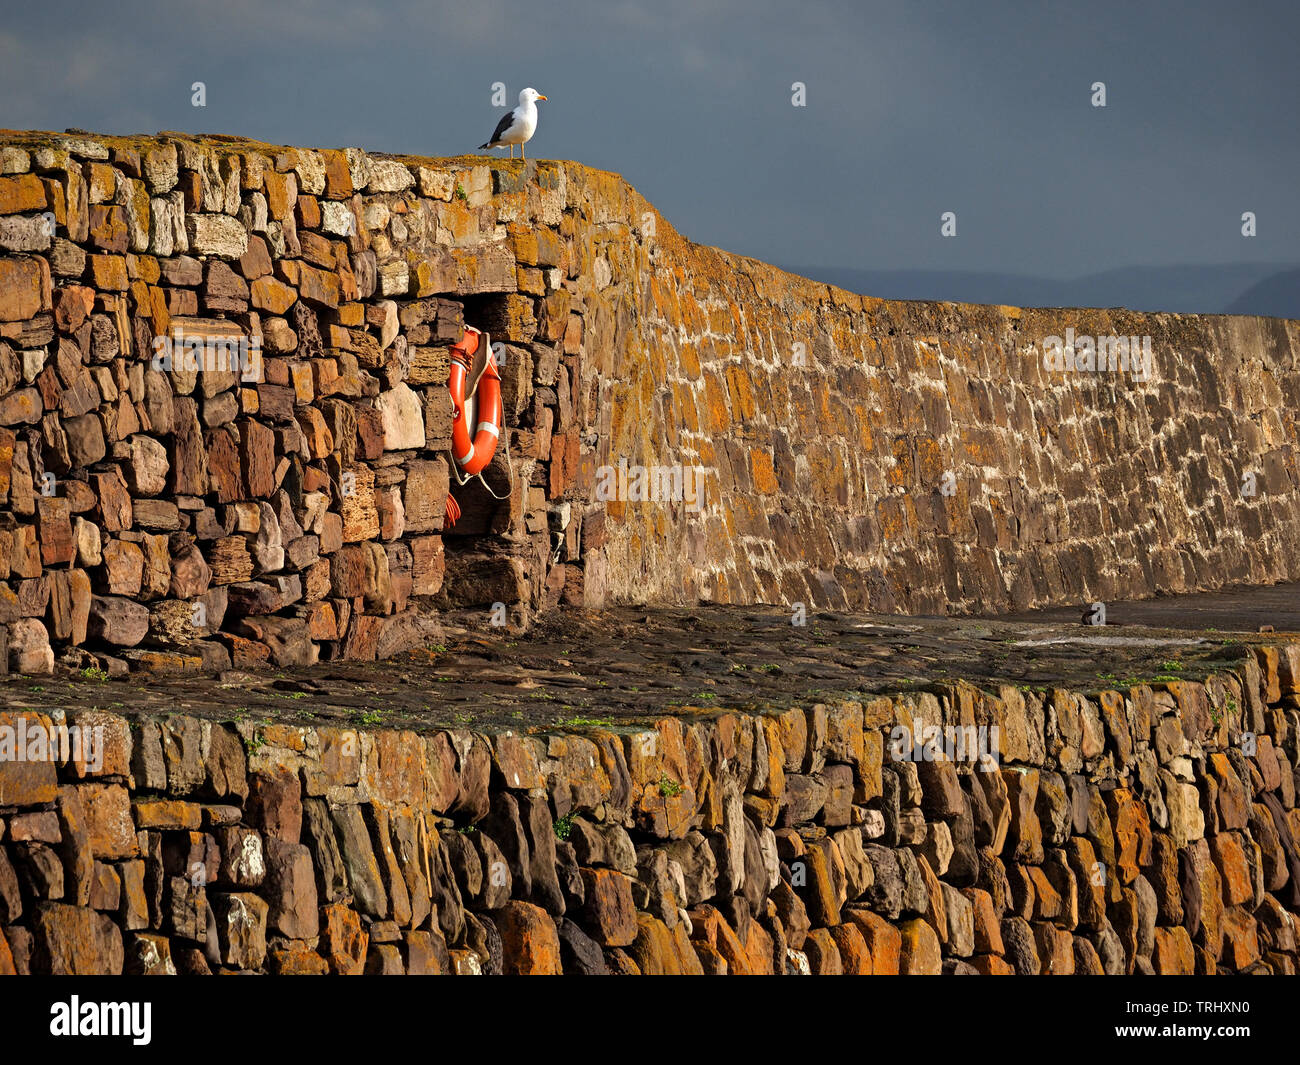 golden stones of the old harbour wall contrast with recessed orange lifebelt in evening light with gull at Cellardyke, Anstruther, Fife, Scotland, UK - Stock Image